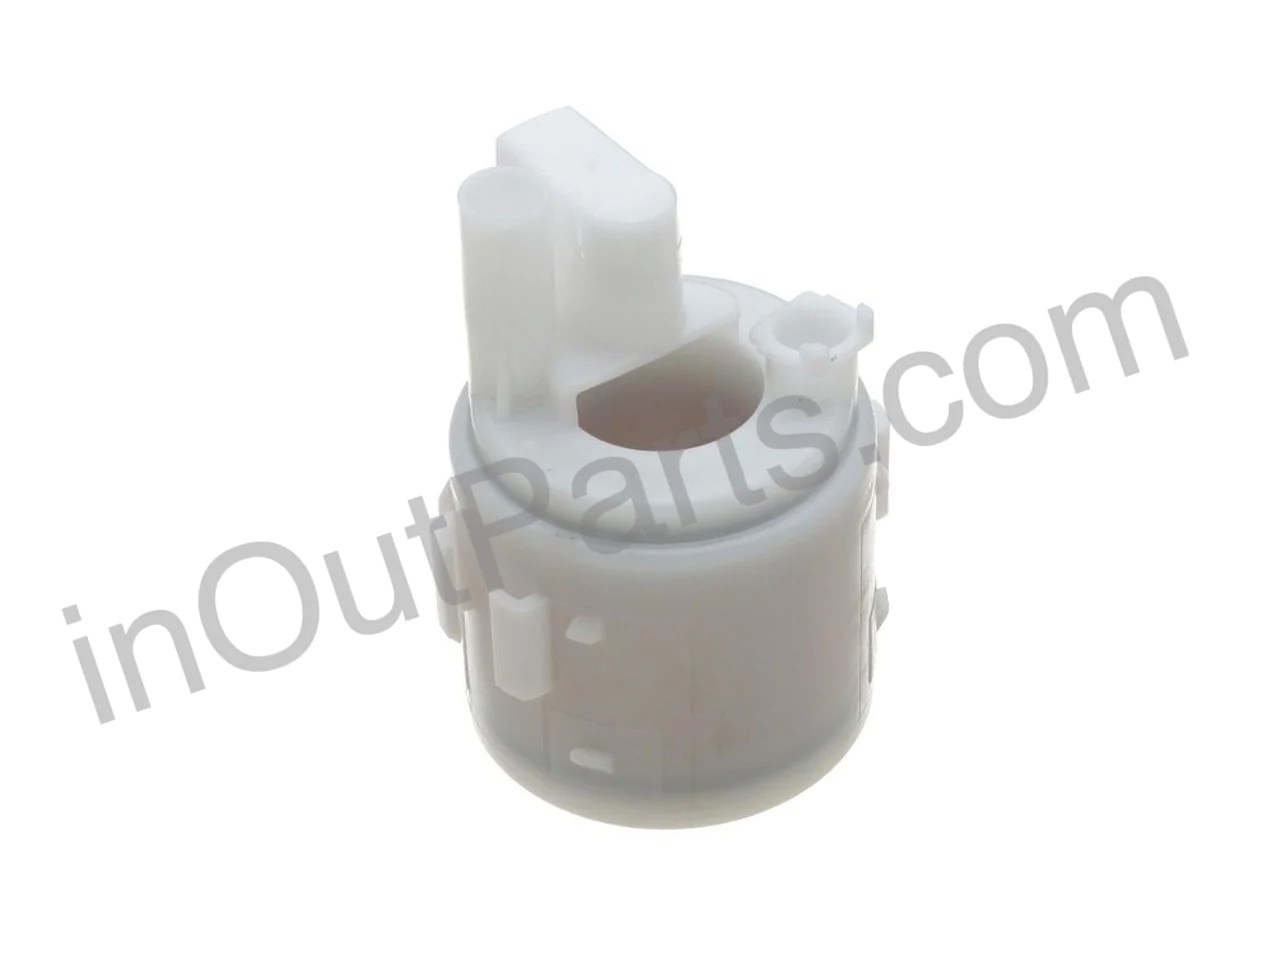 fuel filter fits nissan x trail 2000 2001 2002 2003 2004 2005 2006 2 inout parts [ 1280 x 960 Pixel ]